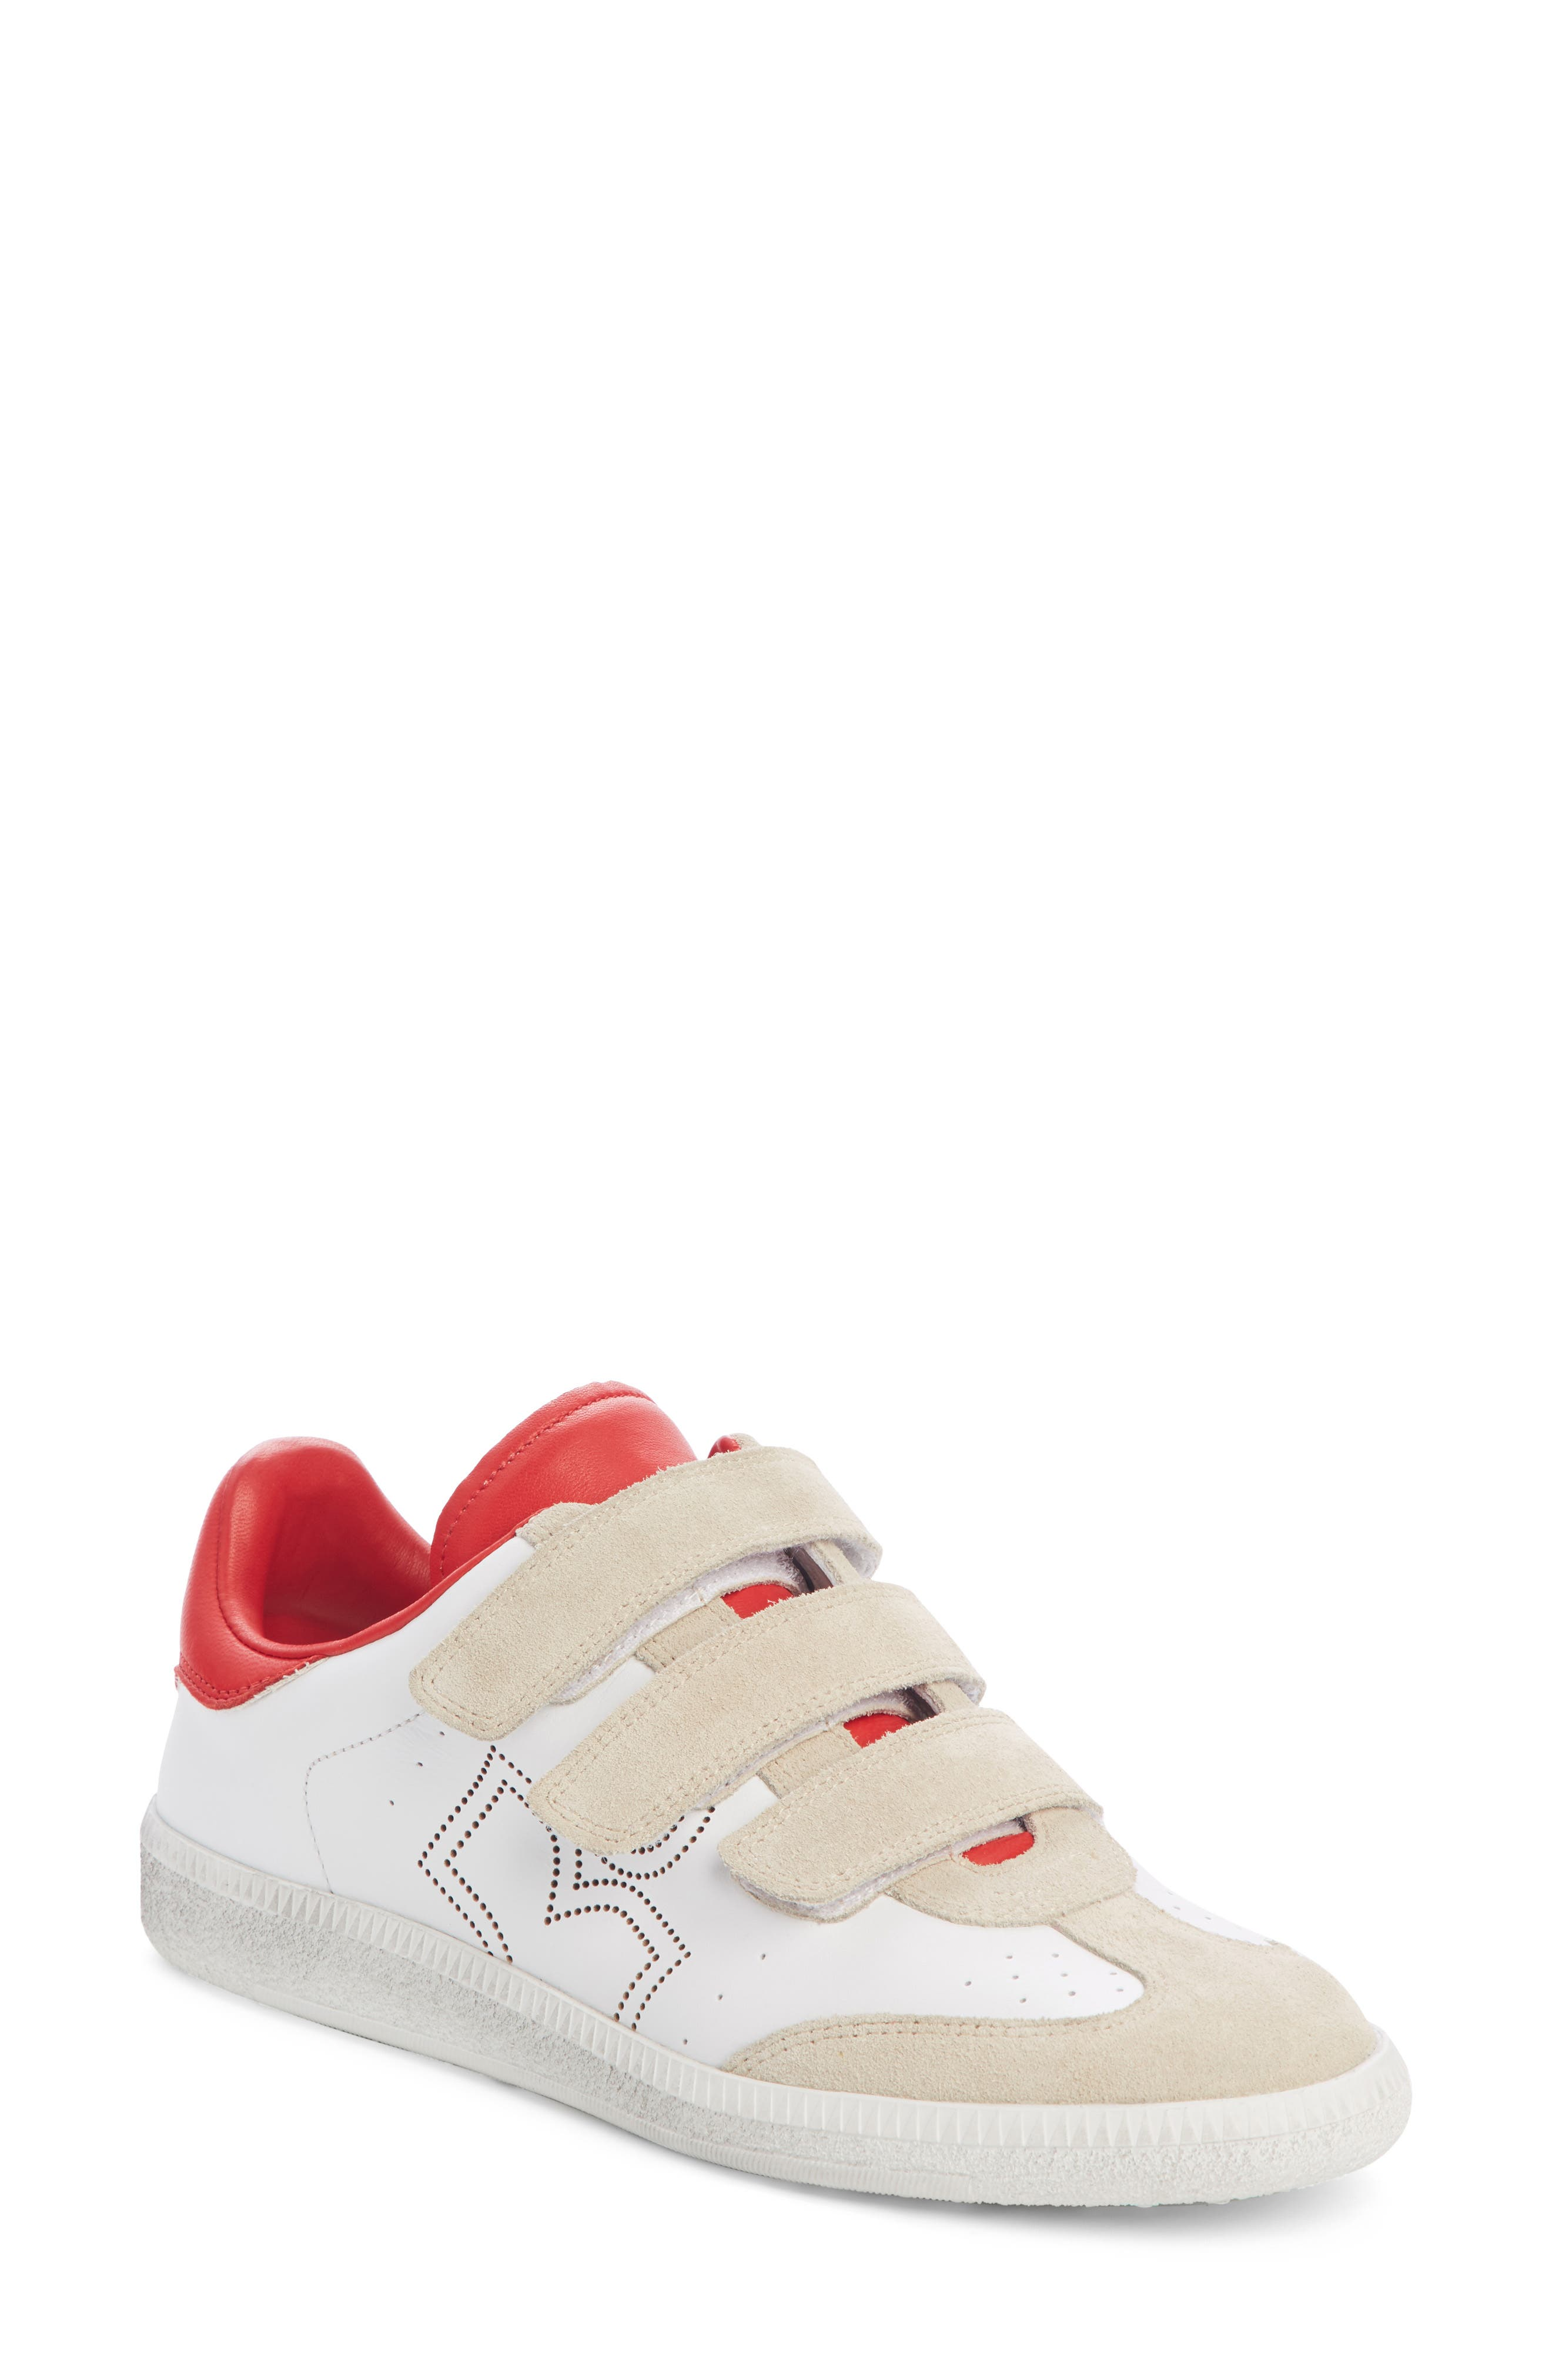 ISABEL MARANT,                             Beth Low Top Sneaker,                             Main thumbnail 1, color,                             WHITE / RED